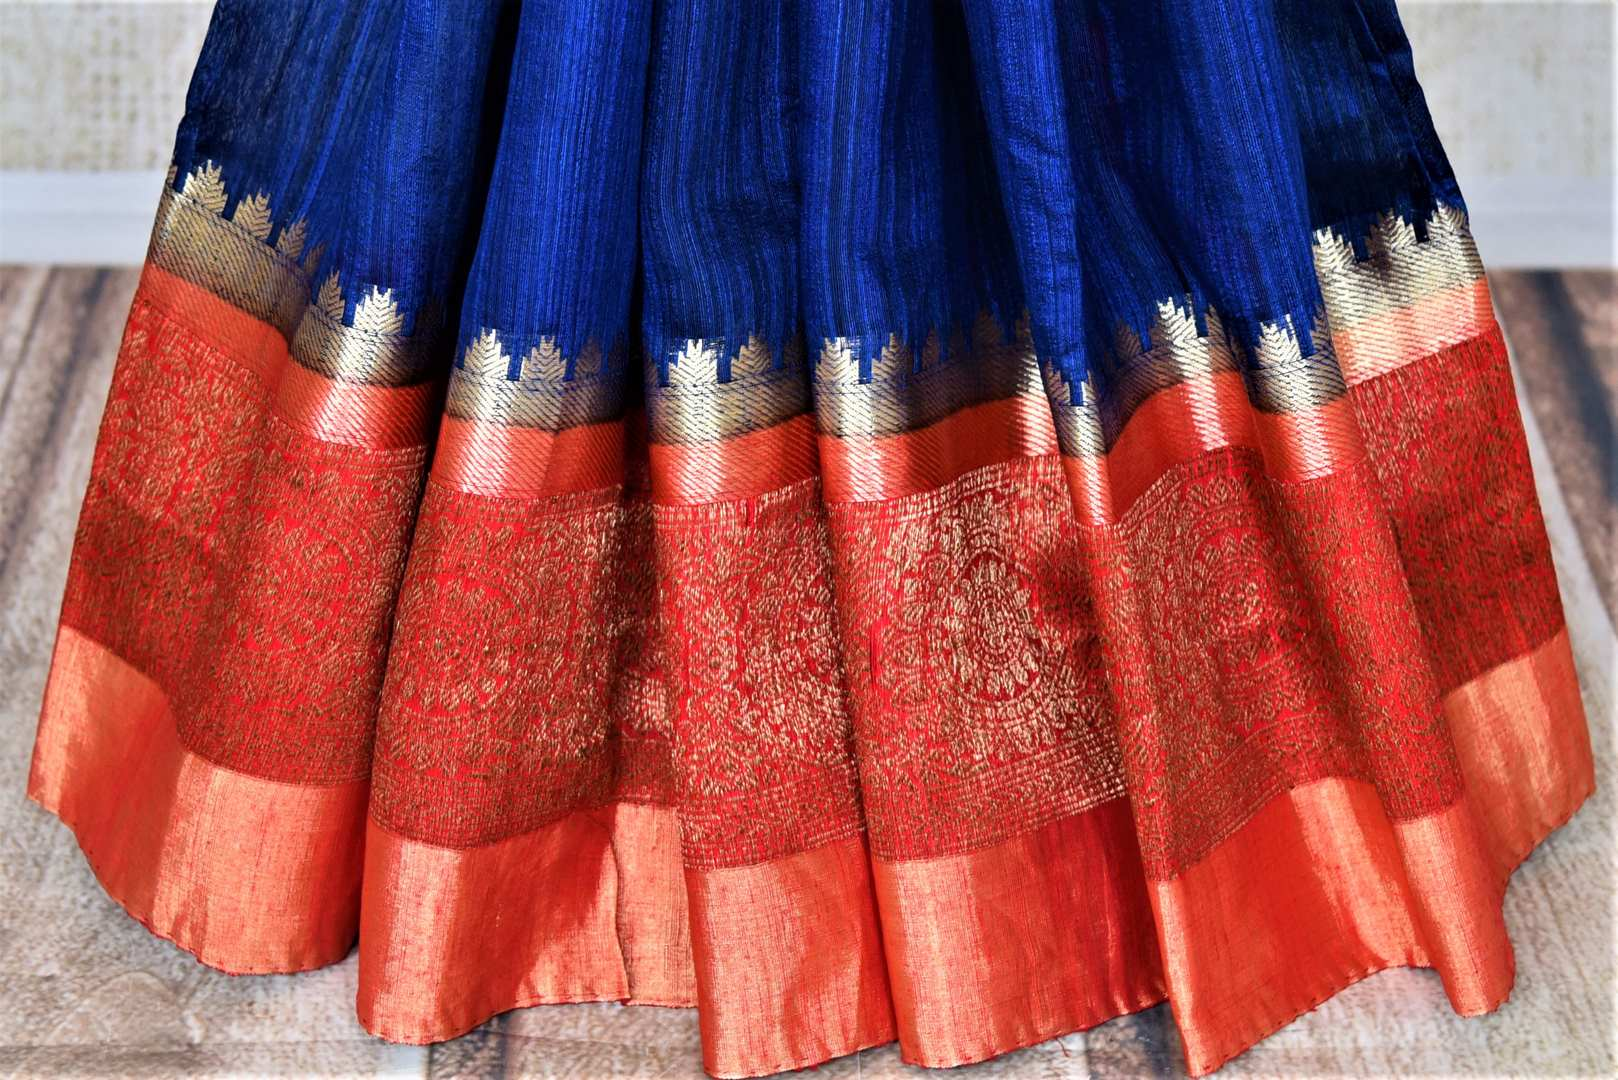 Shop ink blue tussar Banarsi saree online in USA with red zari border. Choose tasteful handloom sarees for special occasions from Pure Elegance. Our exclusive Indian fashion store has a myriad of exquisite pure silk saris, tussar sarees, Banarasi sarees for Indian women in USA.-pleats